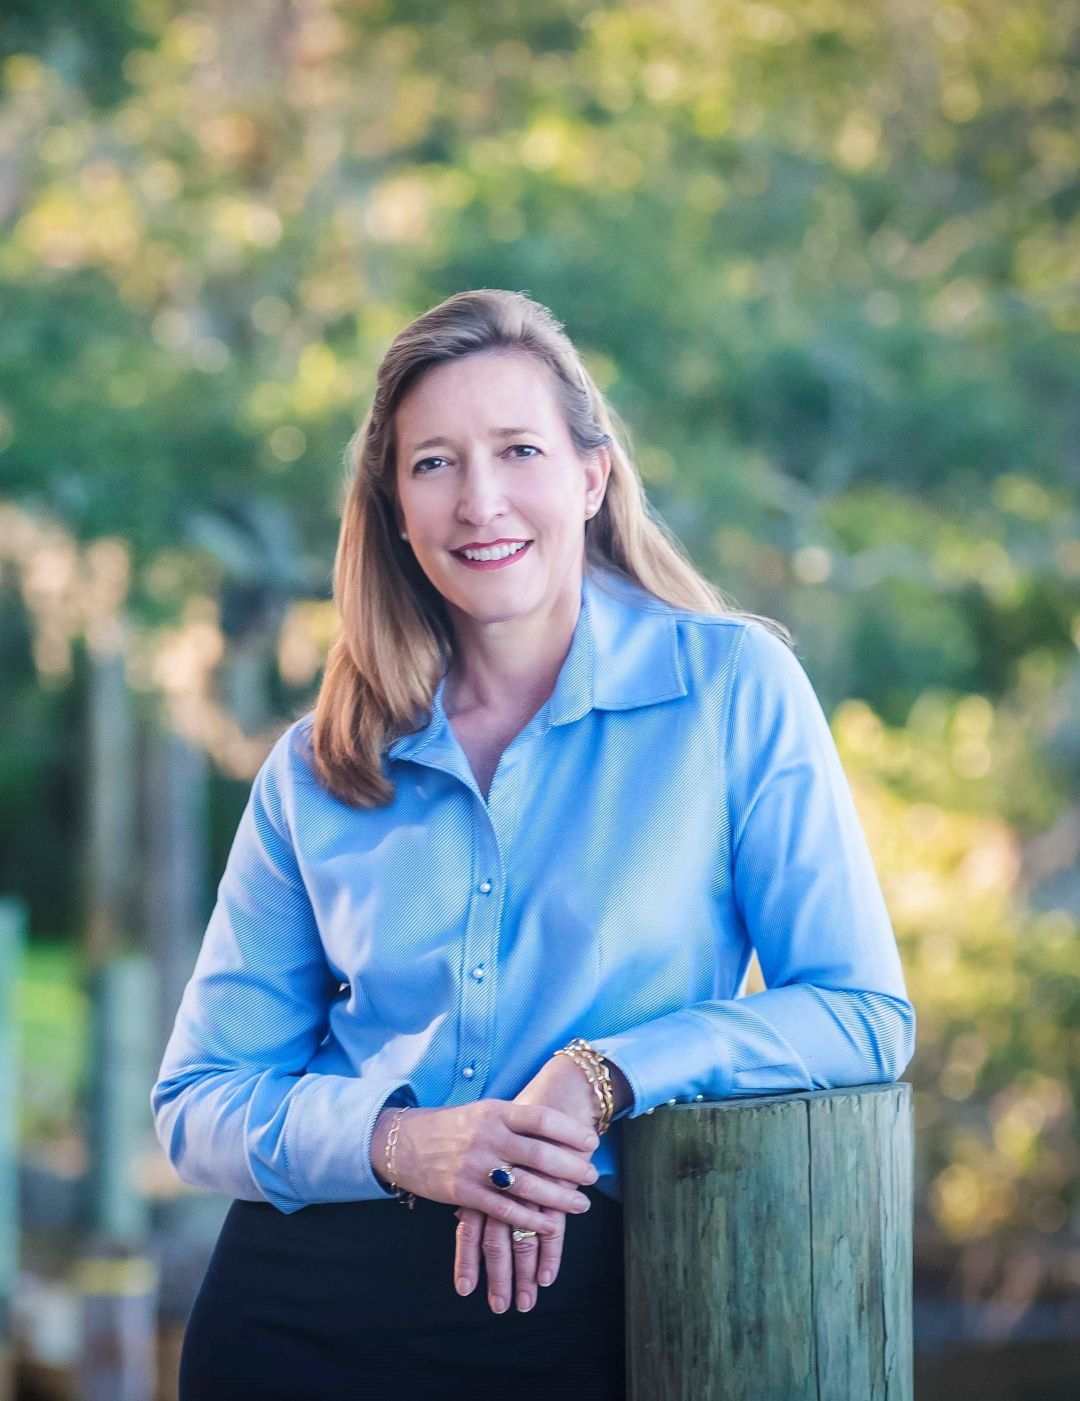 Christine Johnson, president of Conservation Foundation of the Gulf Coast, has been named Visit Sarasota County board chair.